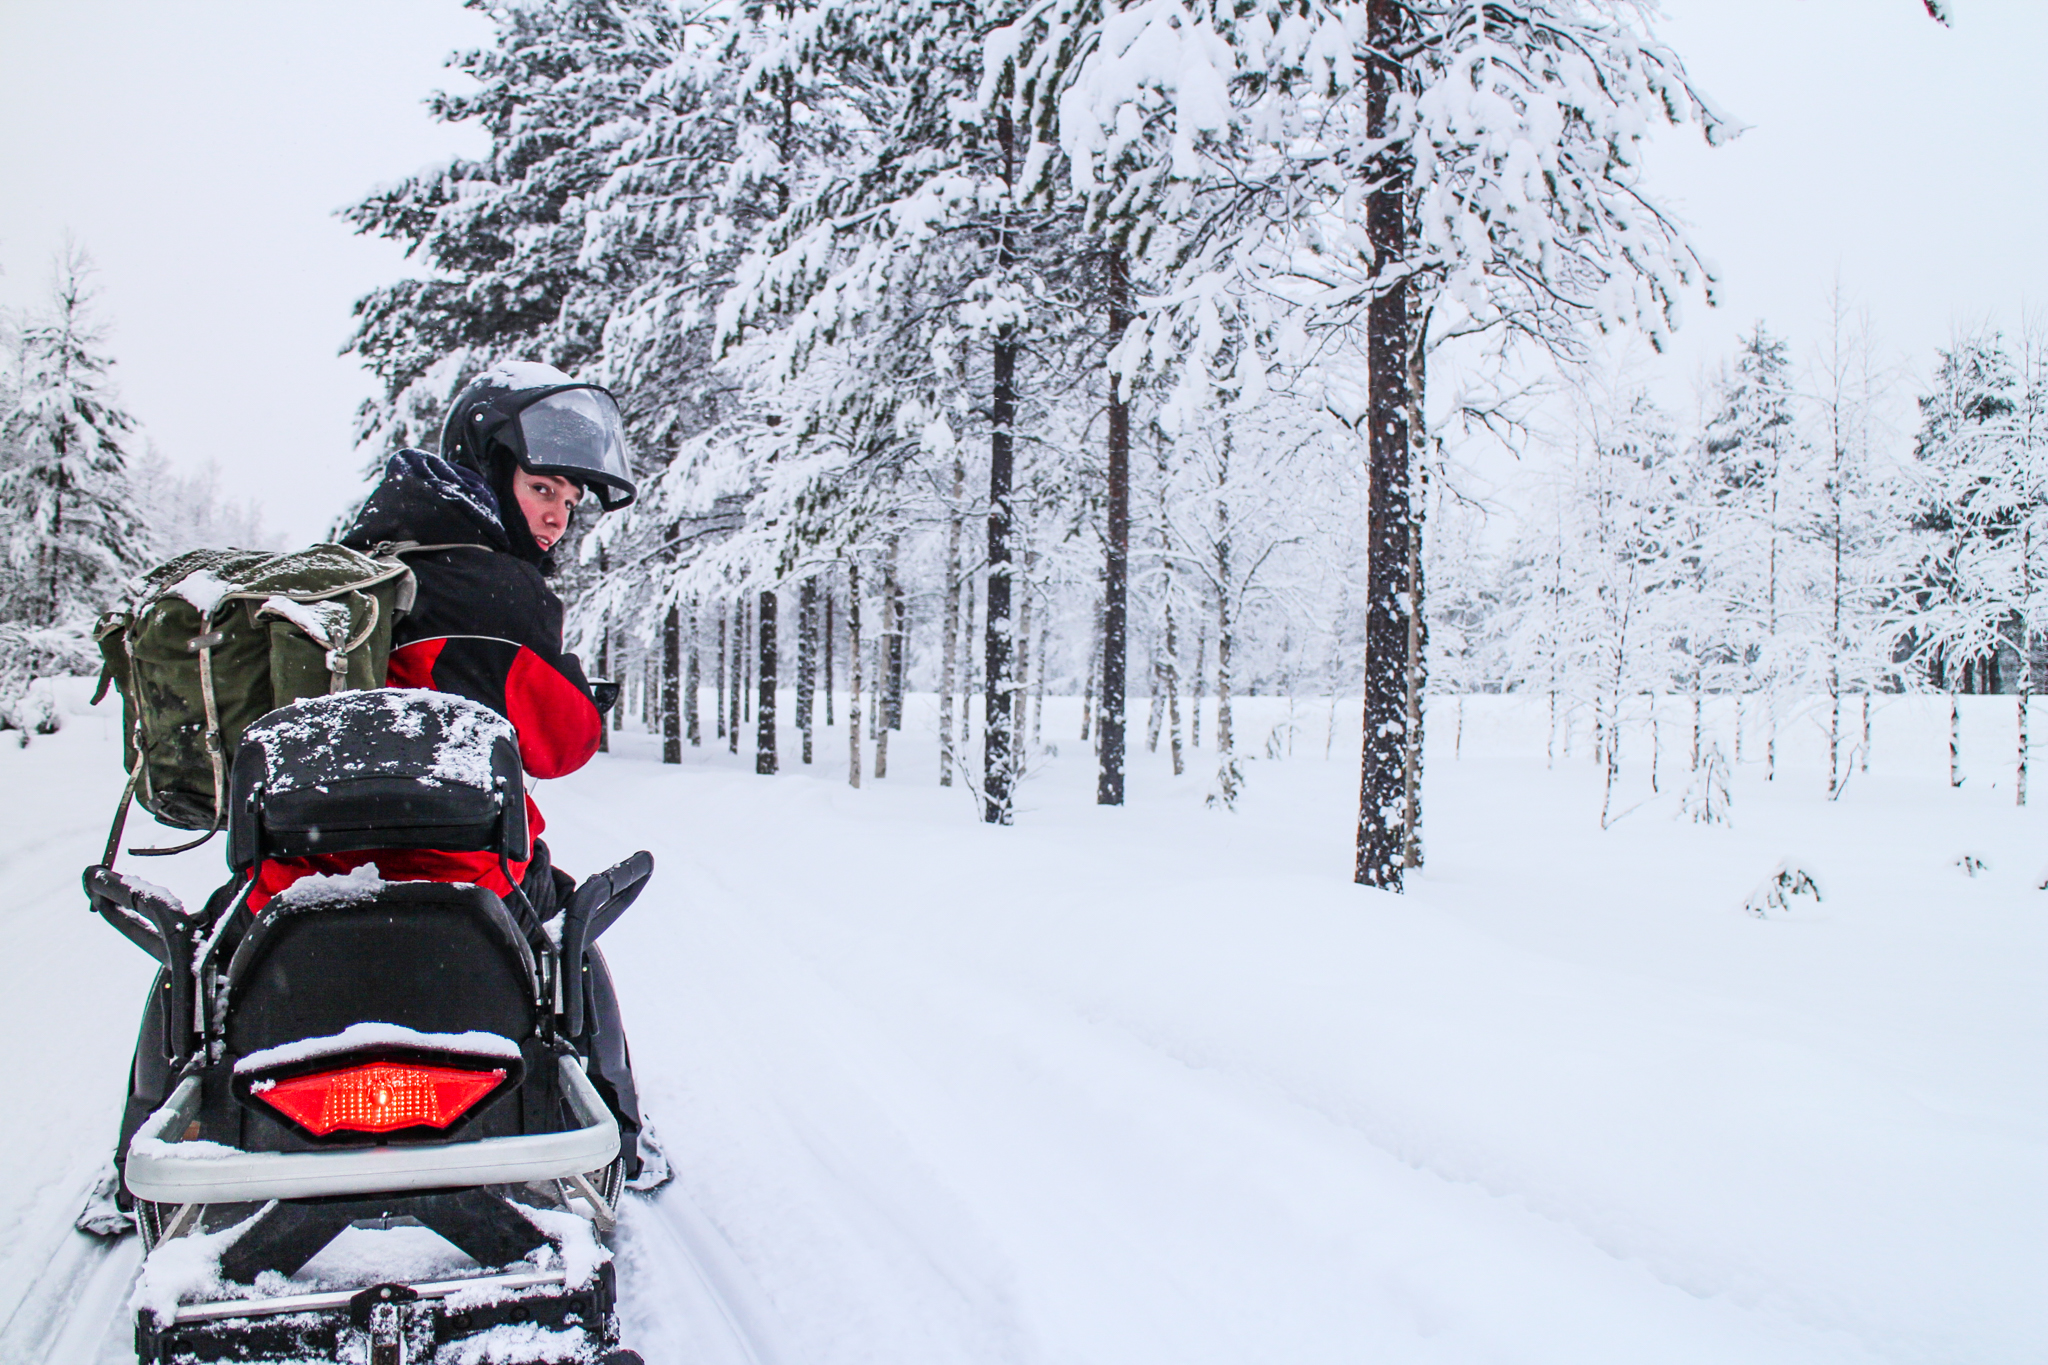 Snowmobile and Snowy forest